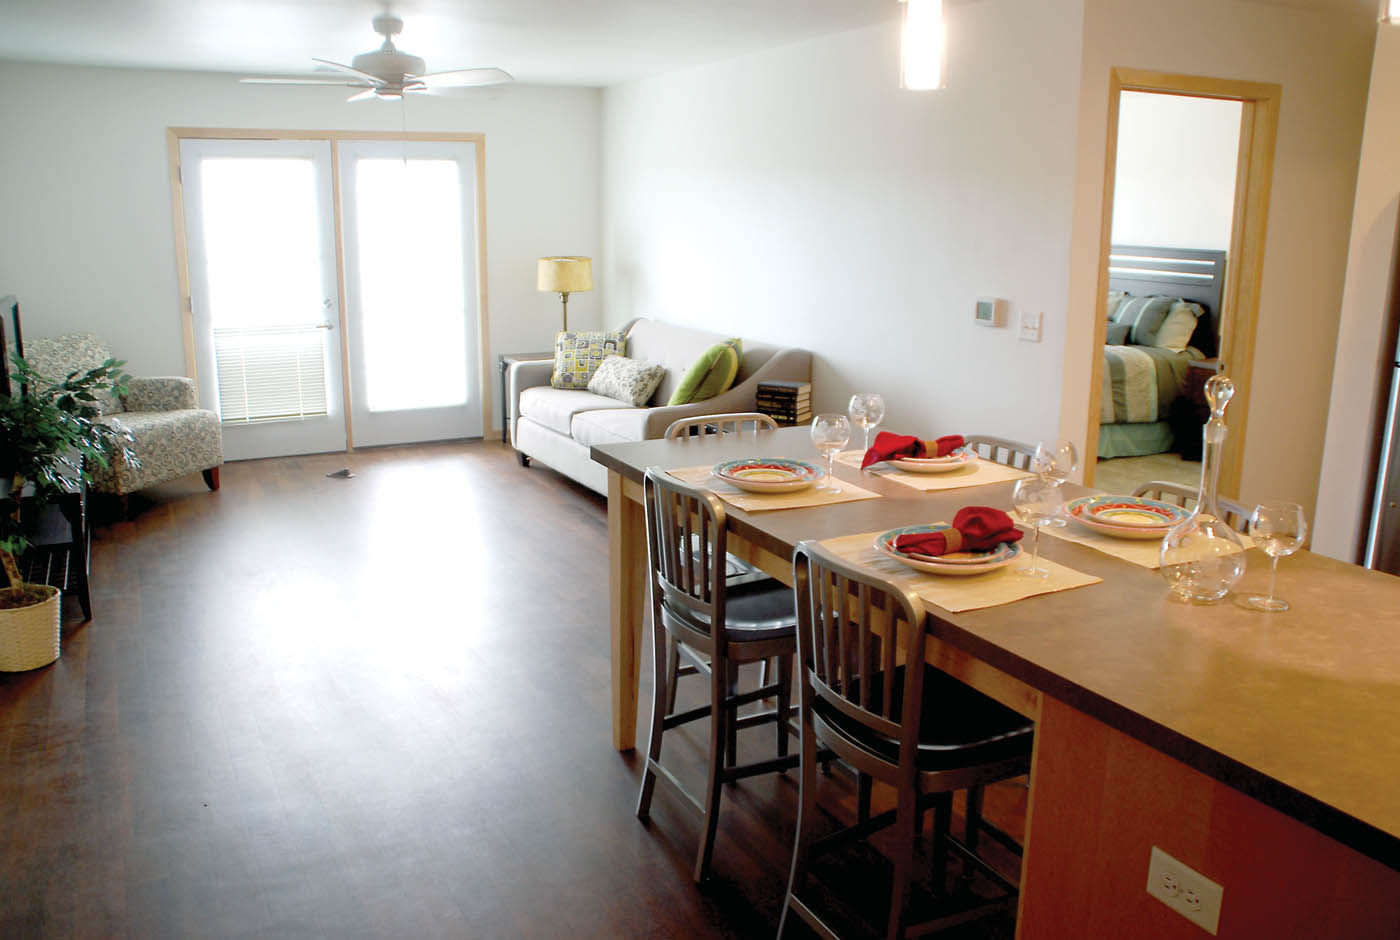 A Fully Furnished Model Apartment Is Available For Viewing On The Third  Floor Of The Soon To Be Open Northgate Apartments In Downtown Owatonna.